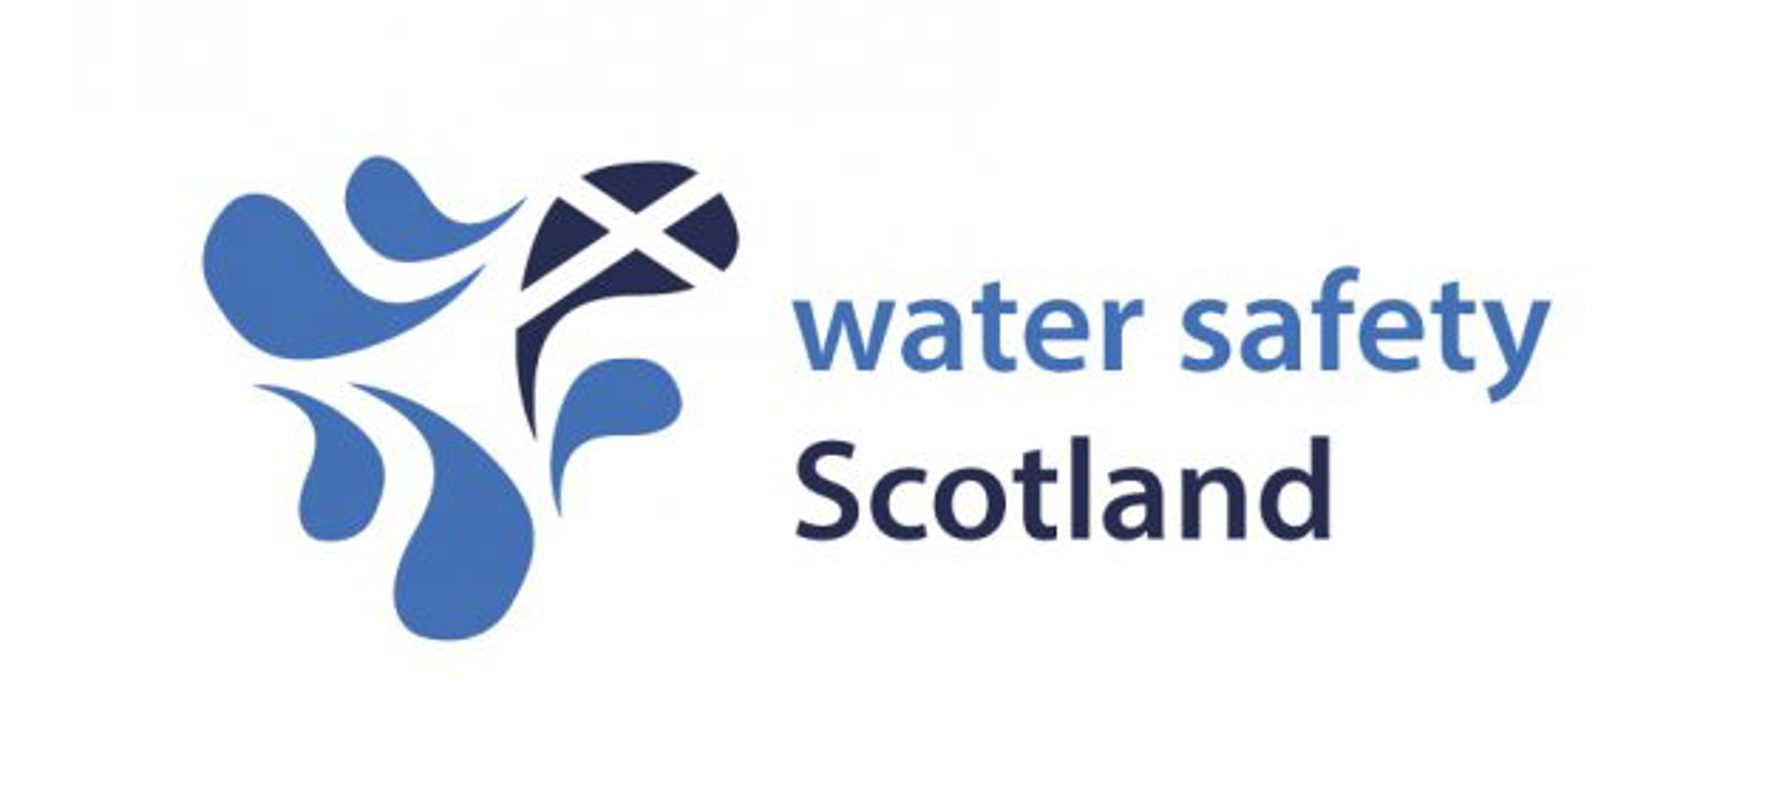 RLSS UK joins experts for Water Safety Scotland conference